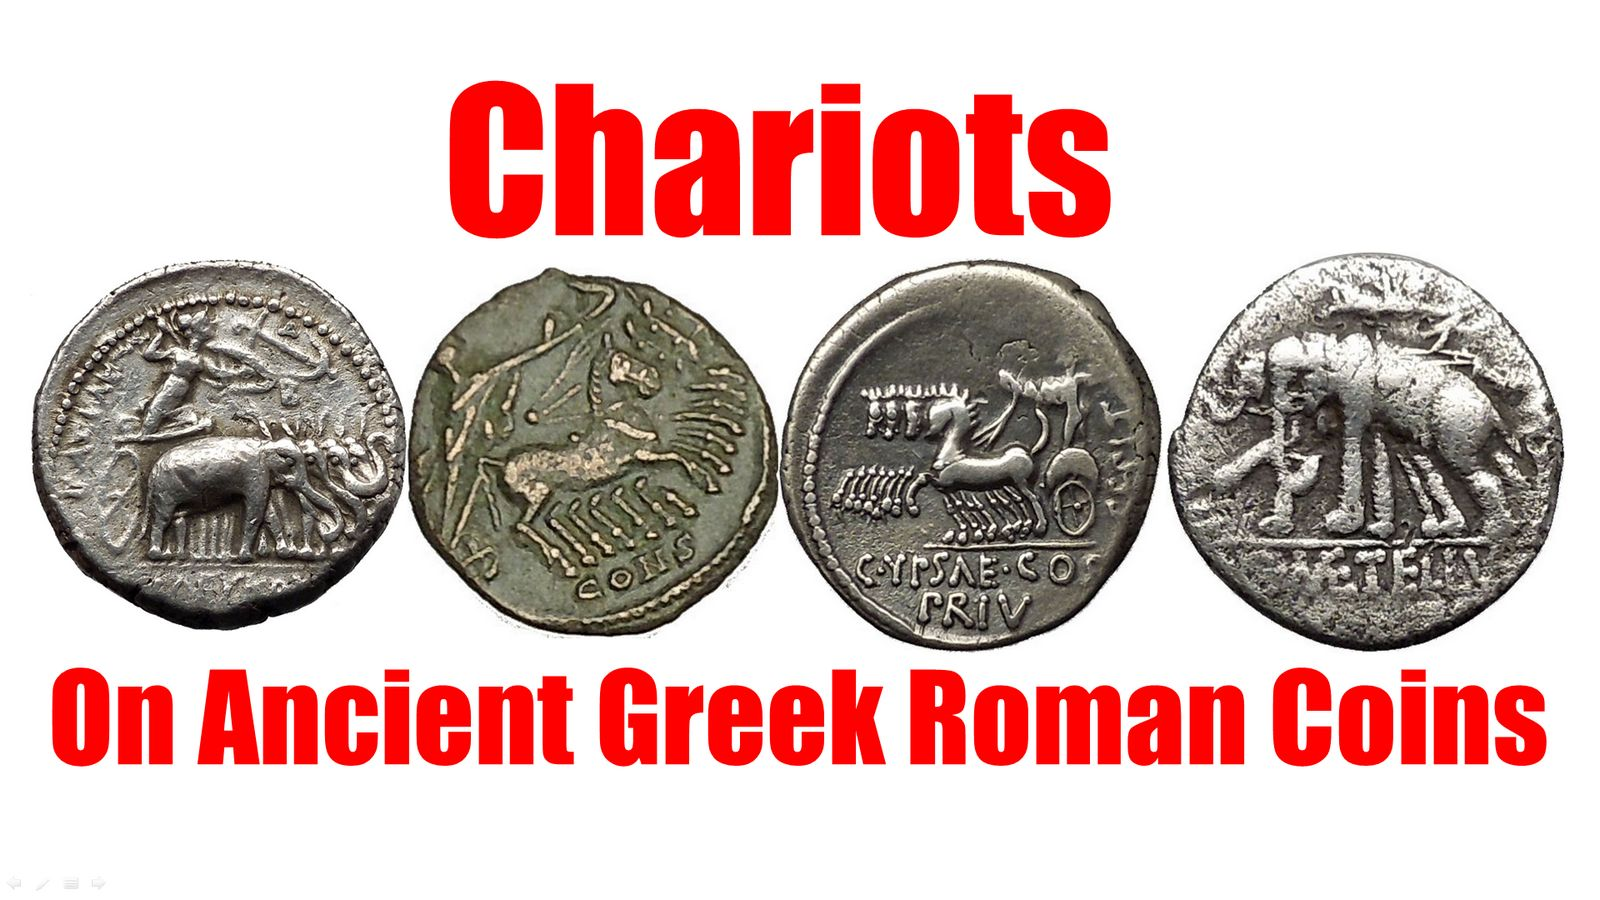 Chariots On Authentic Ancient Greek Roman Coins